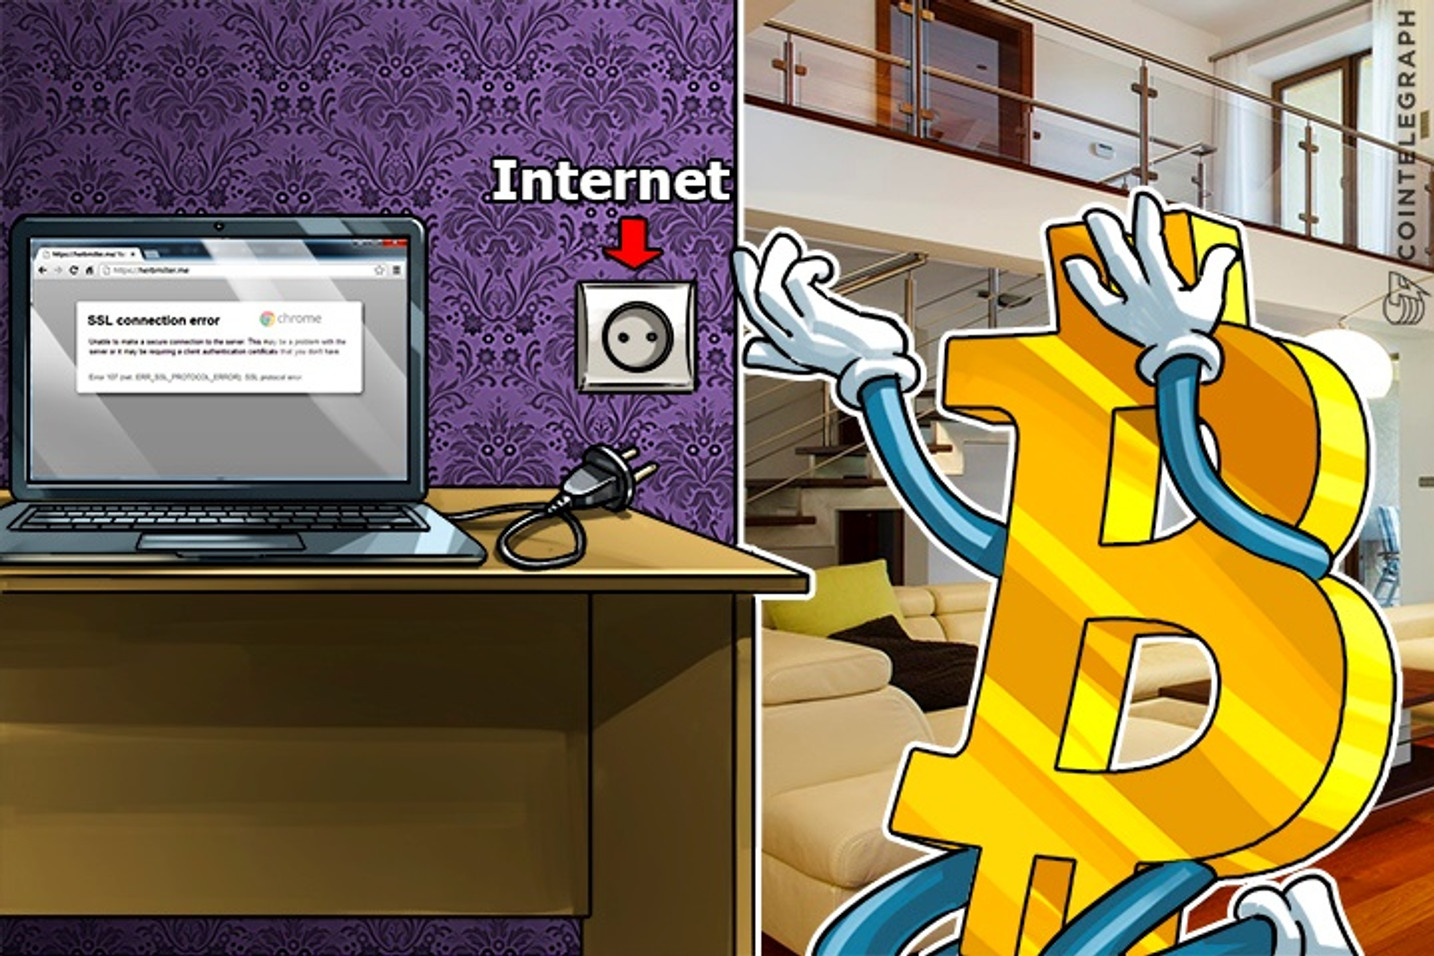 Internet Shutdowns Cost $2.4 Bln A Year. How They Impact Bitcoin?